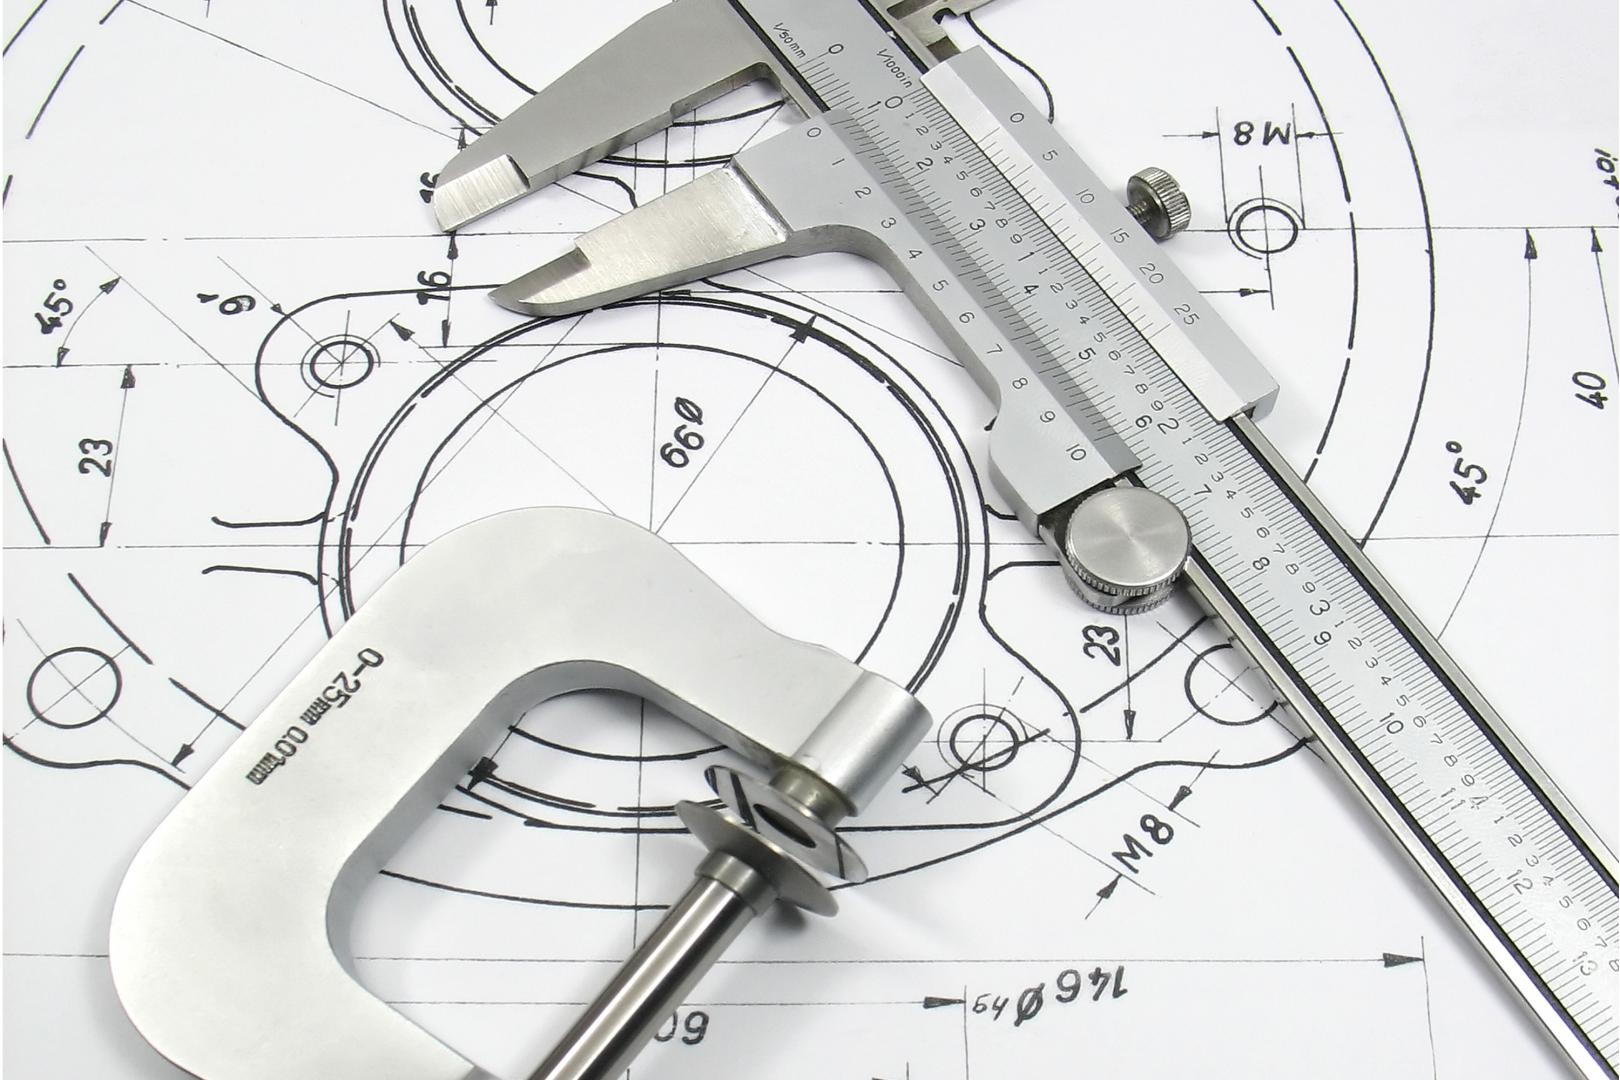 Engineering Drafting Services Melbourne Geelong Victoria Hvac Mechanical Drawing Dynamic Let Us Turn Your Ideas Into Reality